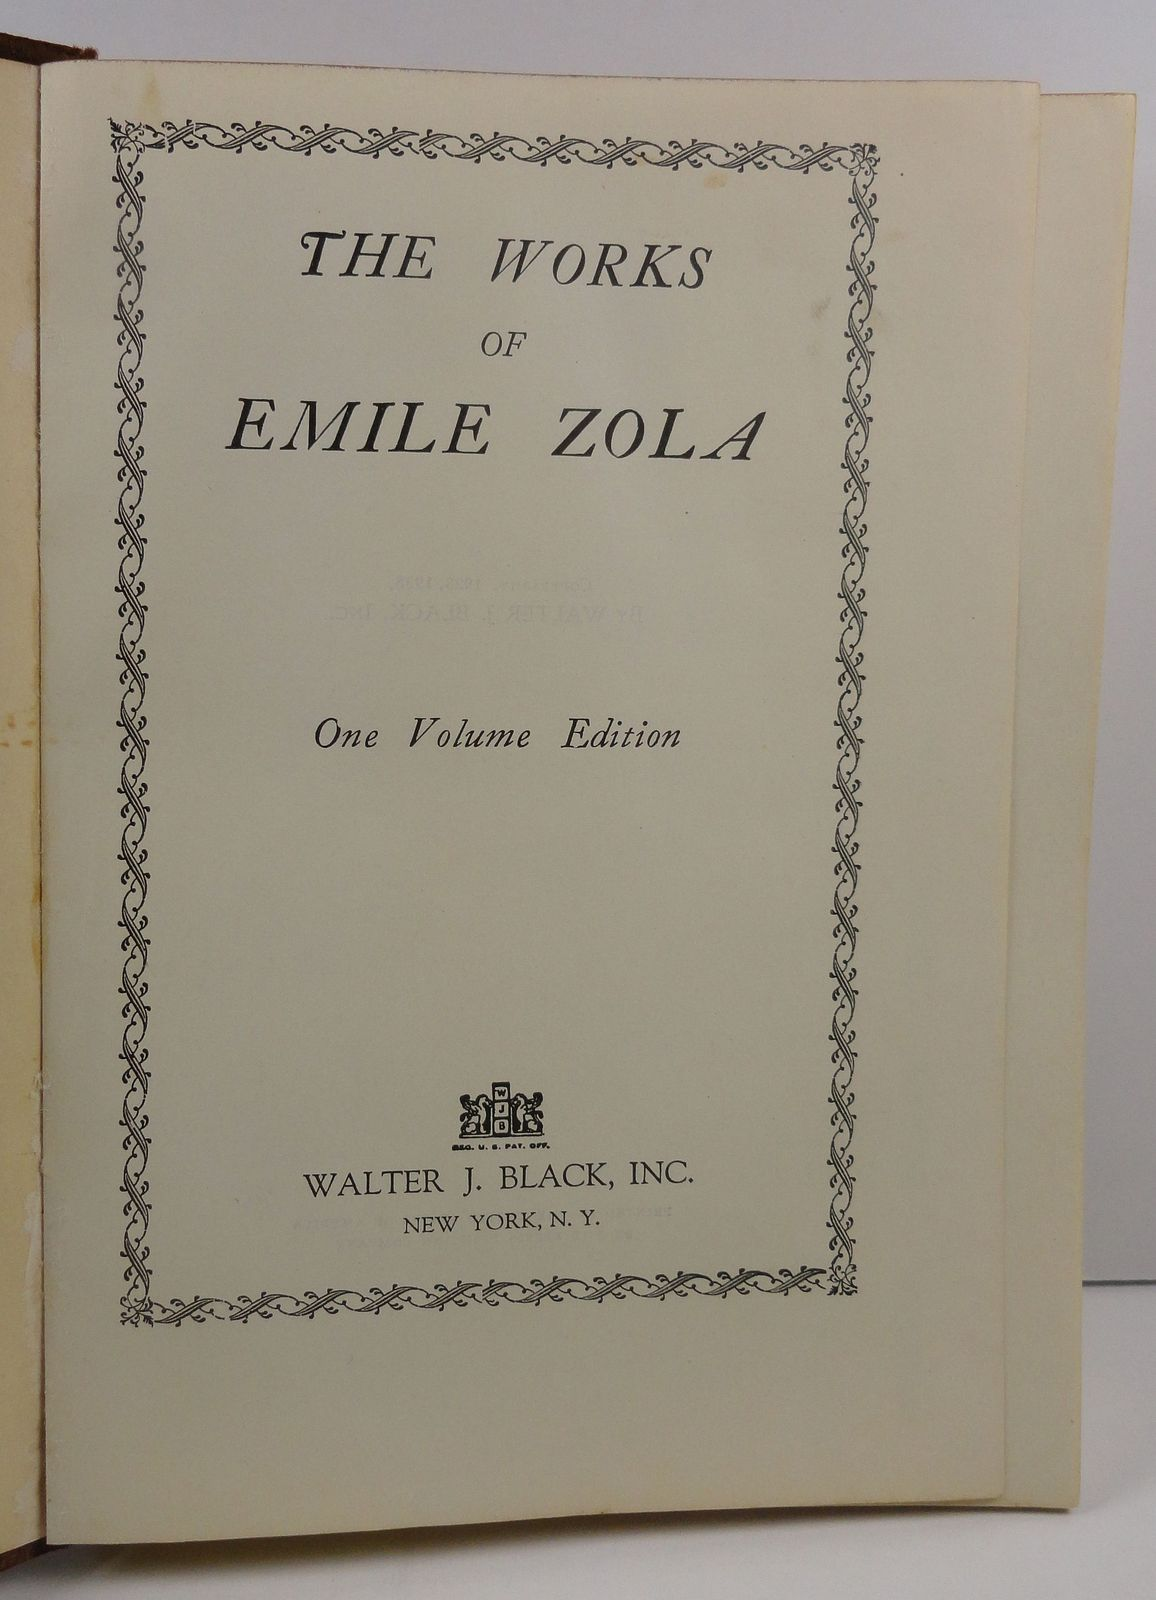 The Works of Emile Zola by Emile Zola 1938 Leather